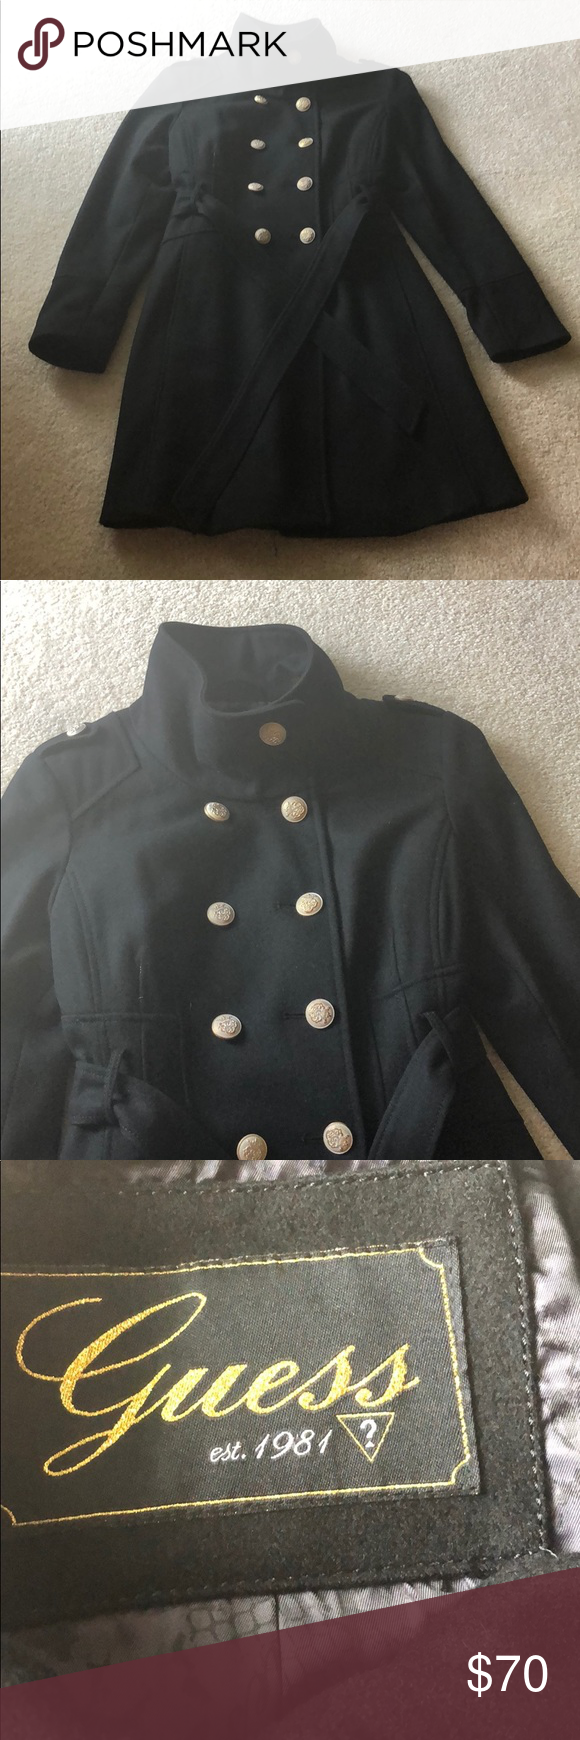 Guess 3/4 length pea coat